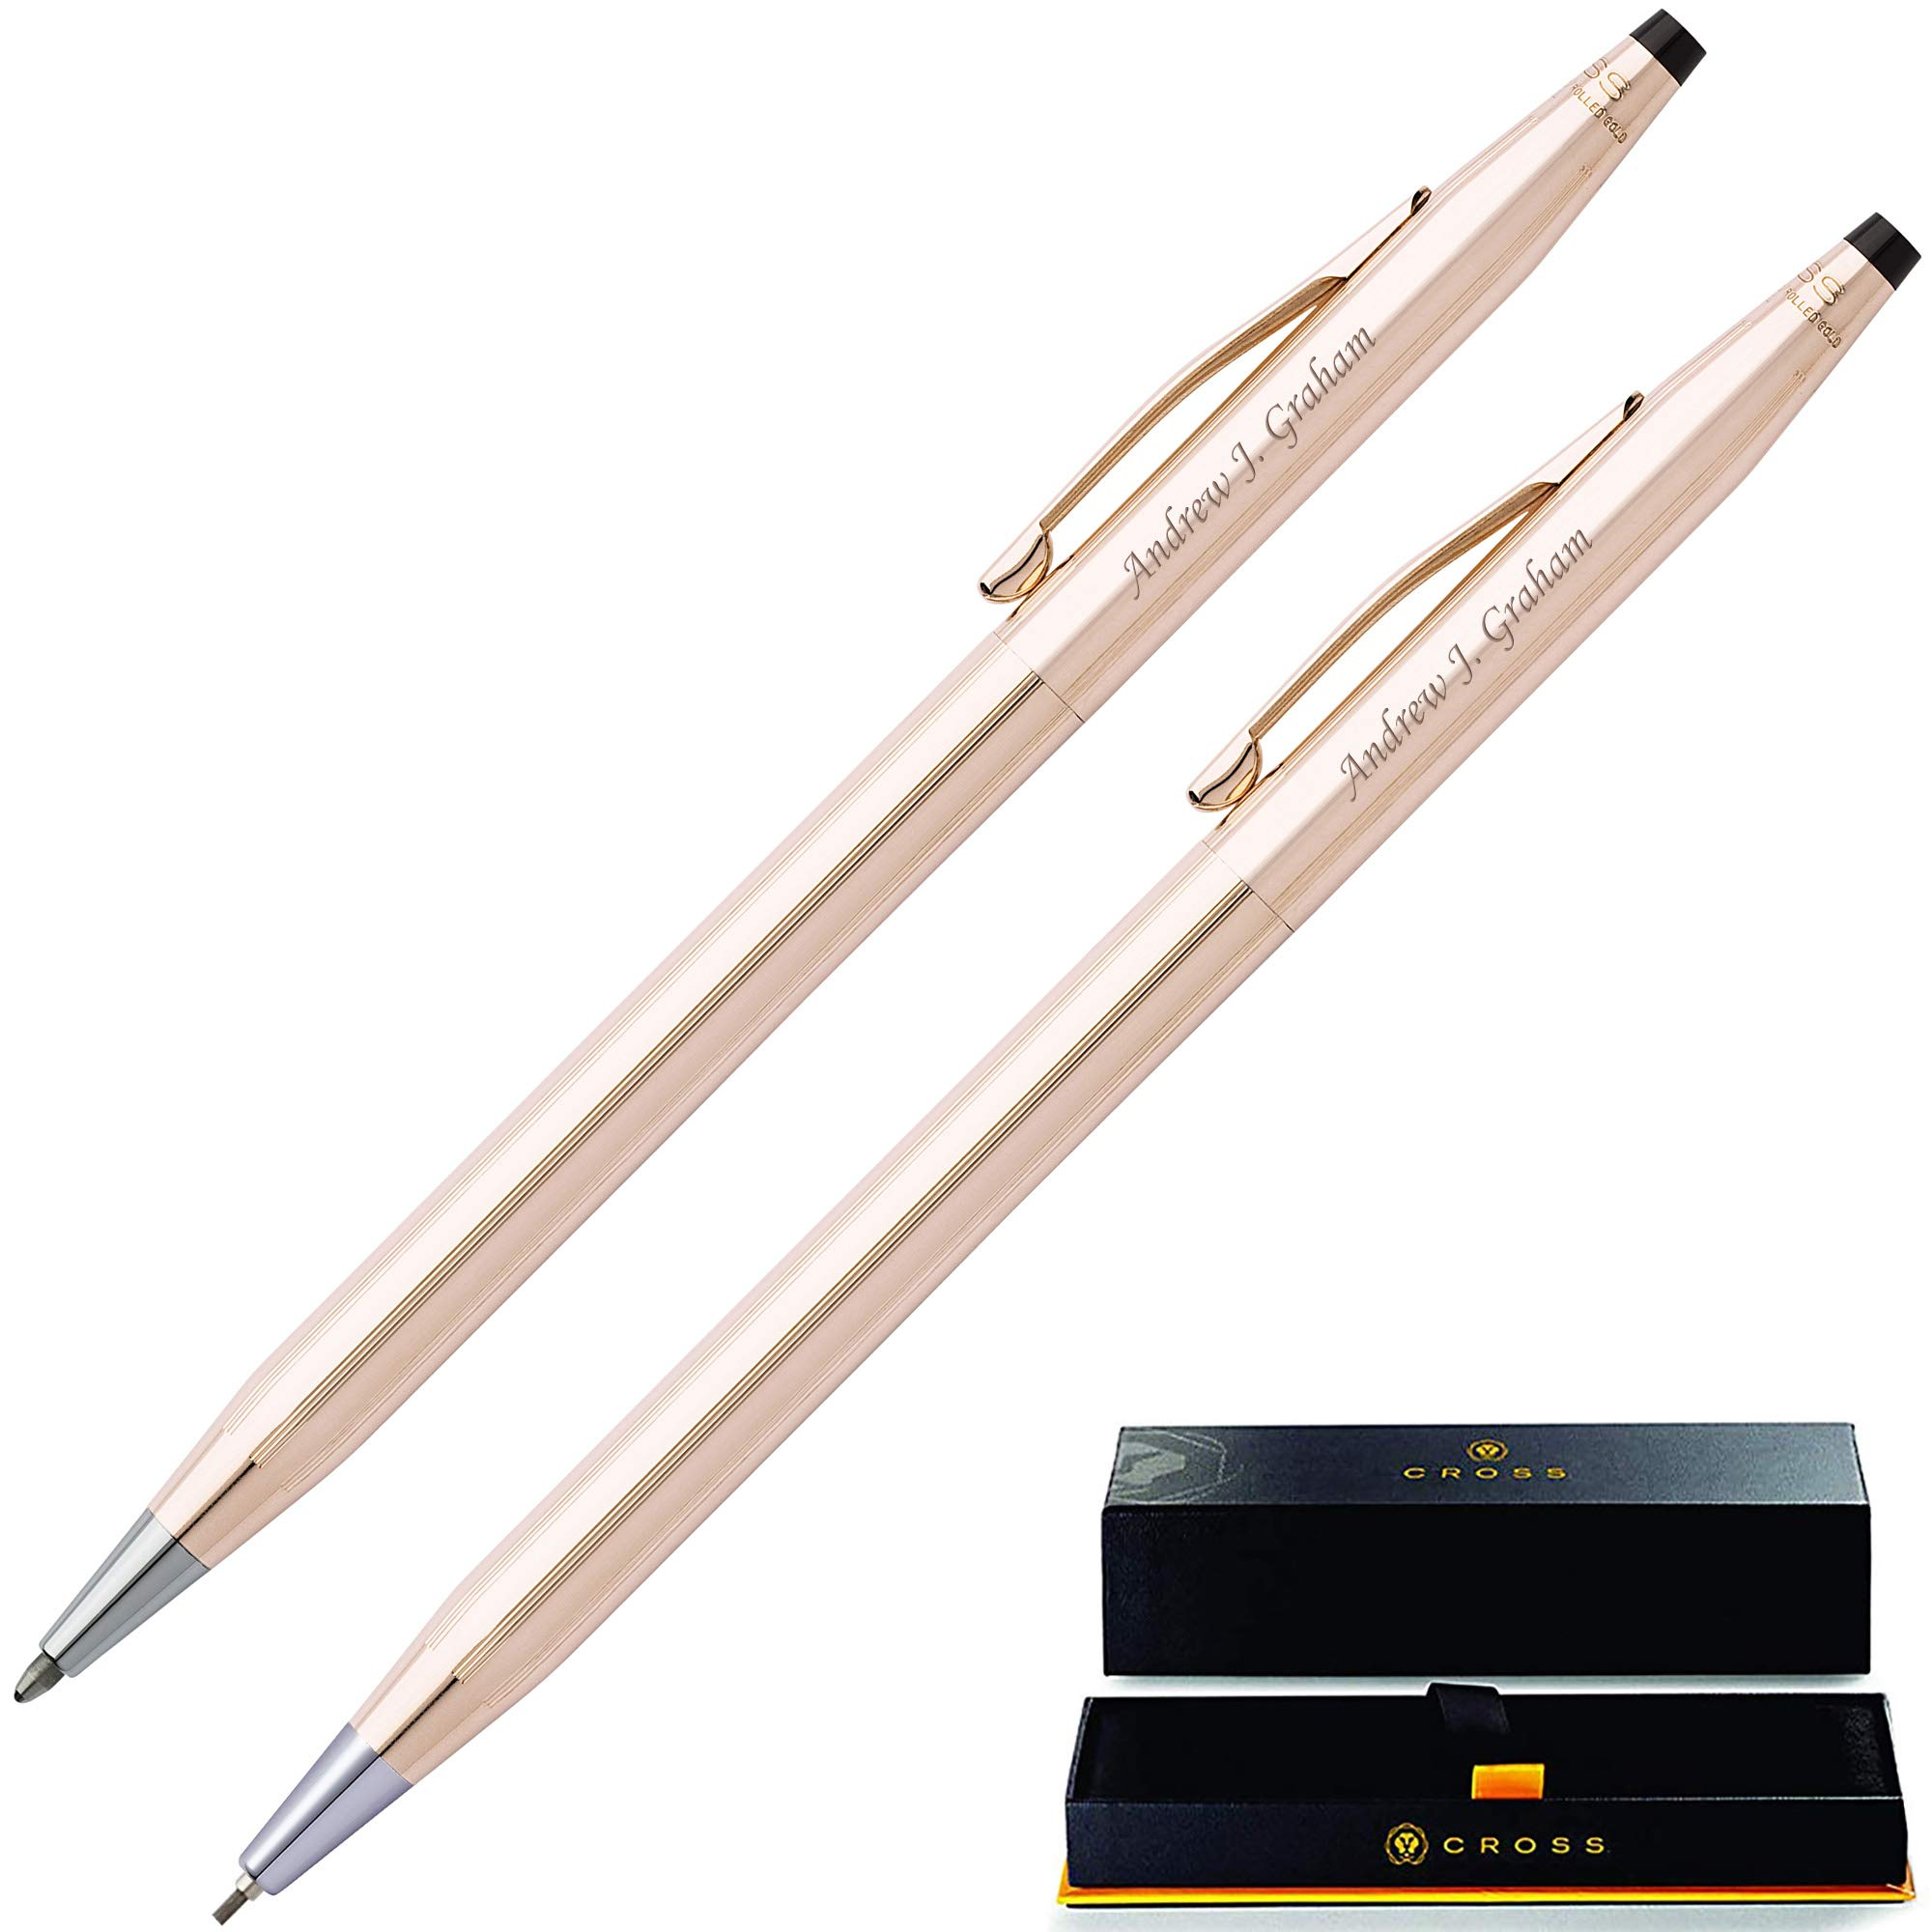 Gold Cross Pen Set | Engraved/Personalized Cross Classic 14 Karat Gold Plated Pen and Pencil Gift Set. Custom engraved in 1 business day